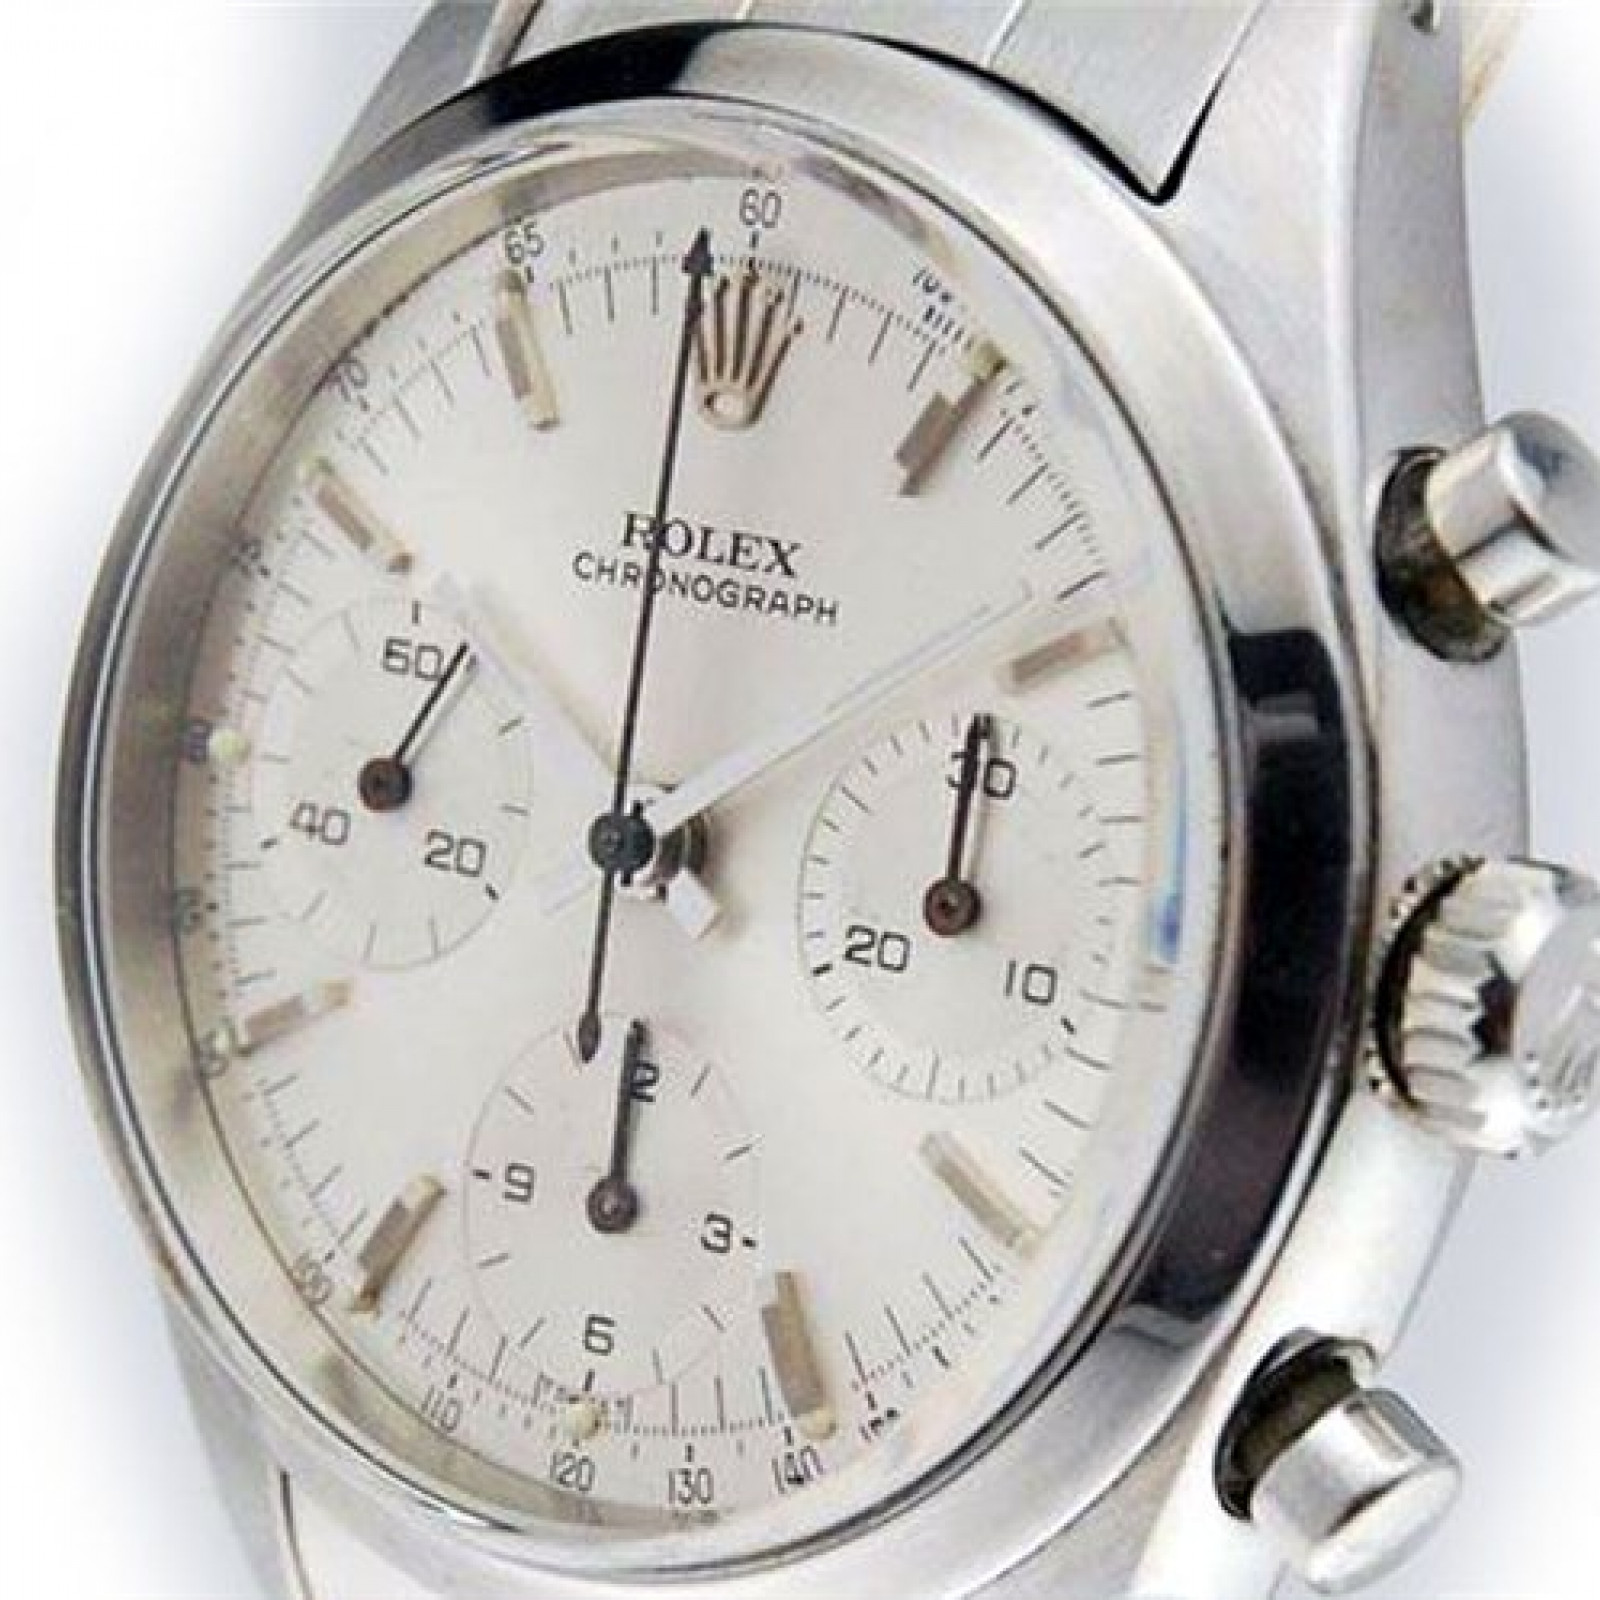 Vintage Rolex Chronograph 6238 Steel with Silver Dial